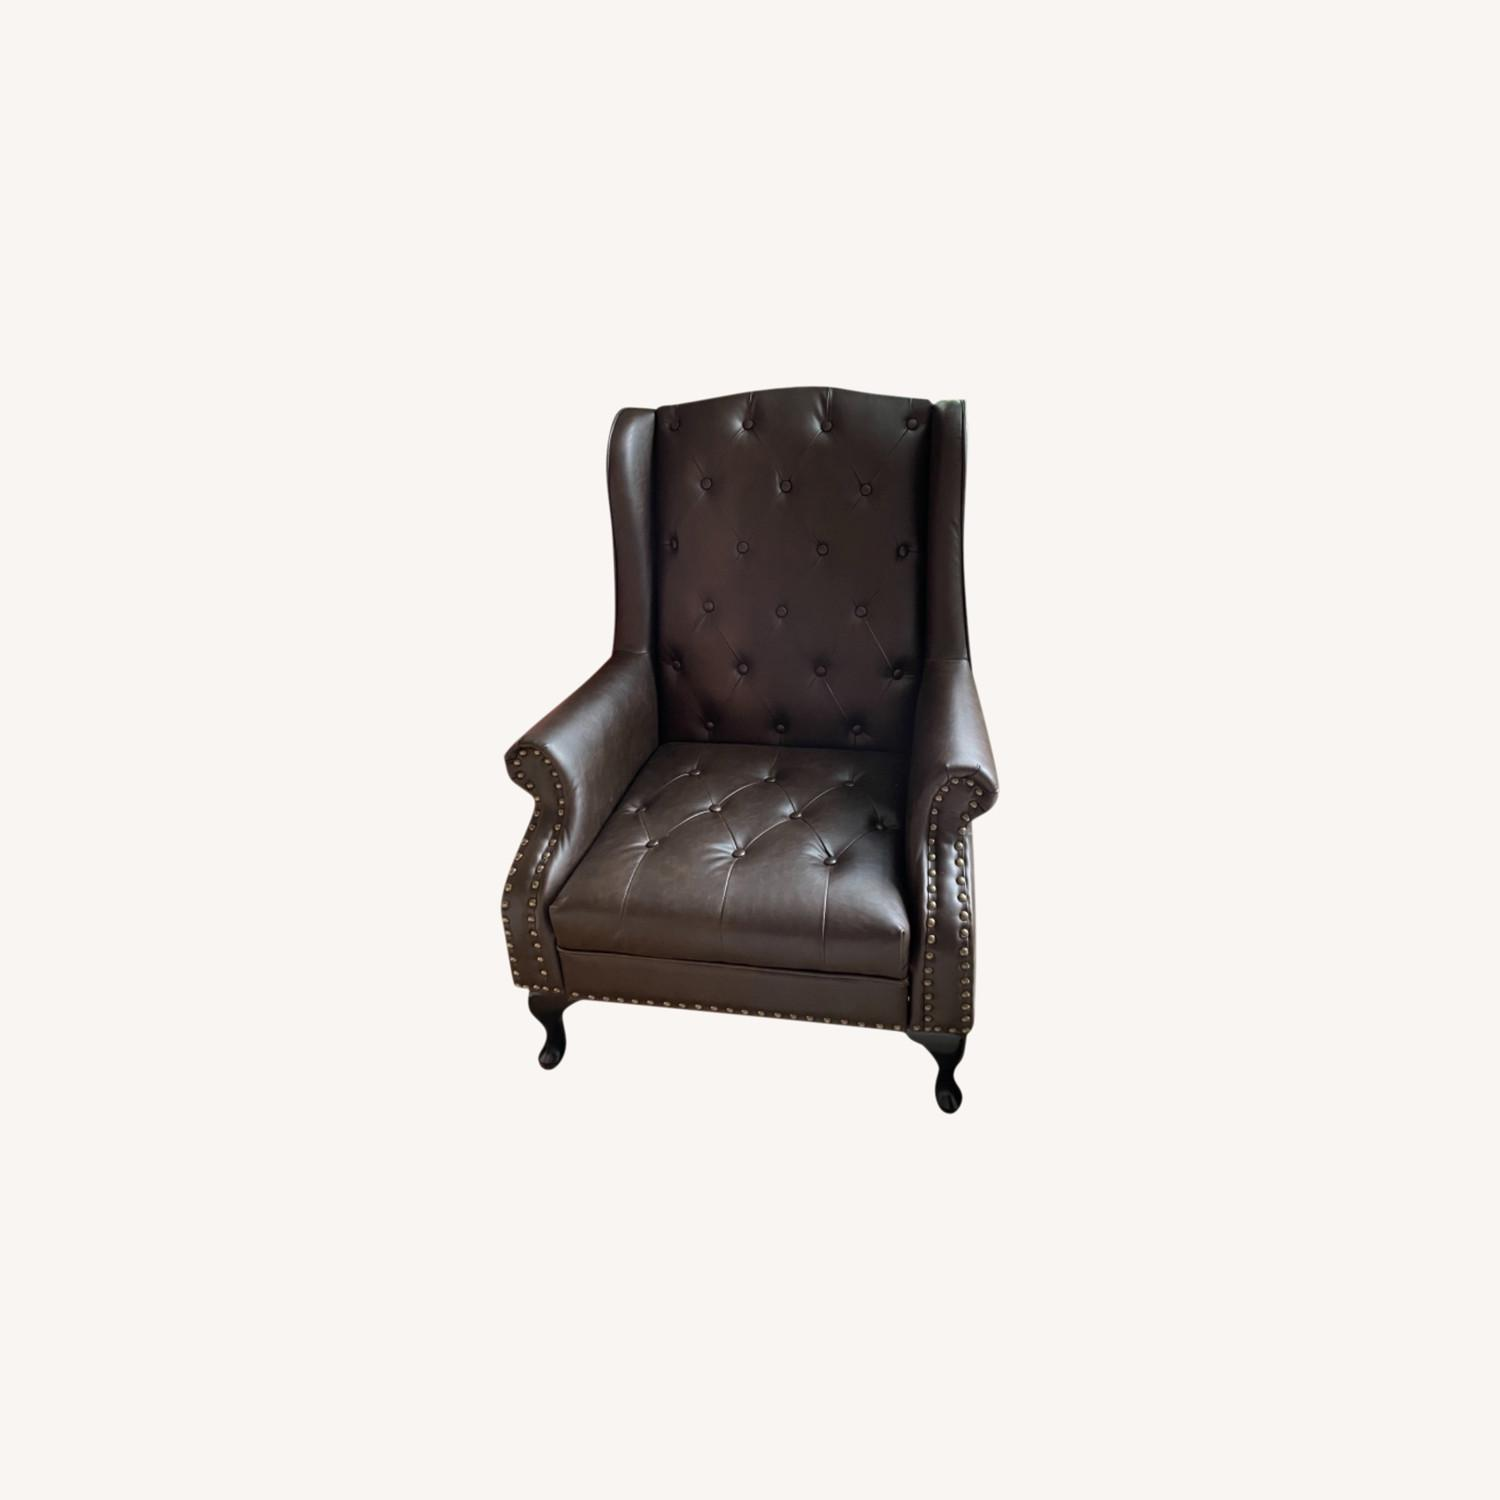 Wingback Tufted Nail Brown Leatherette Chair - image-0